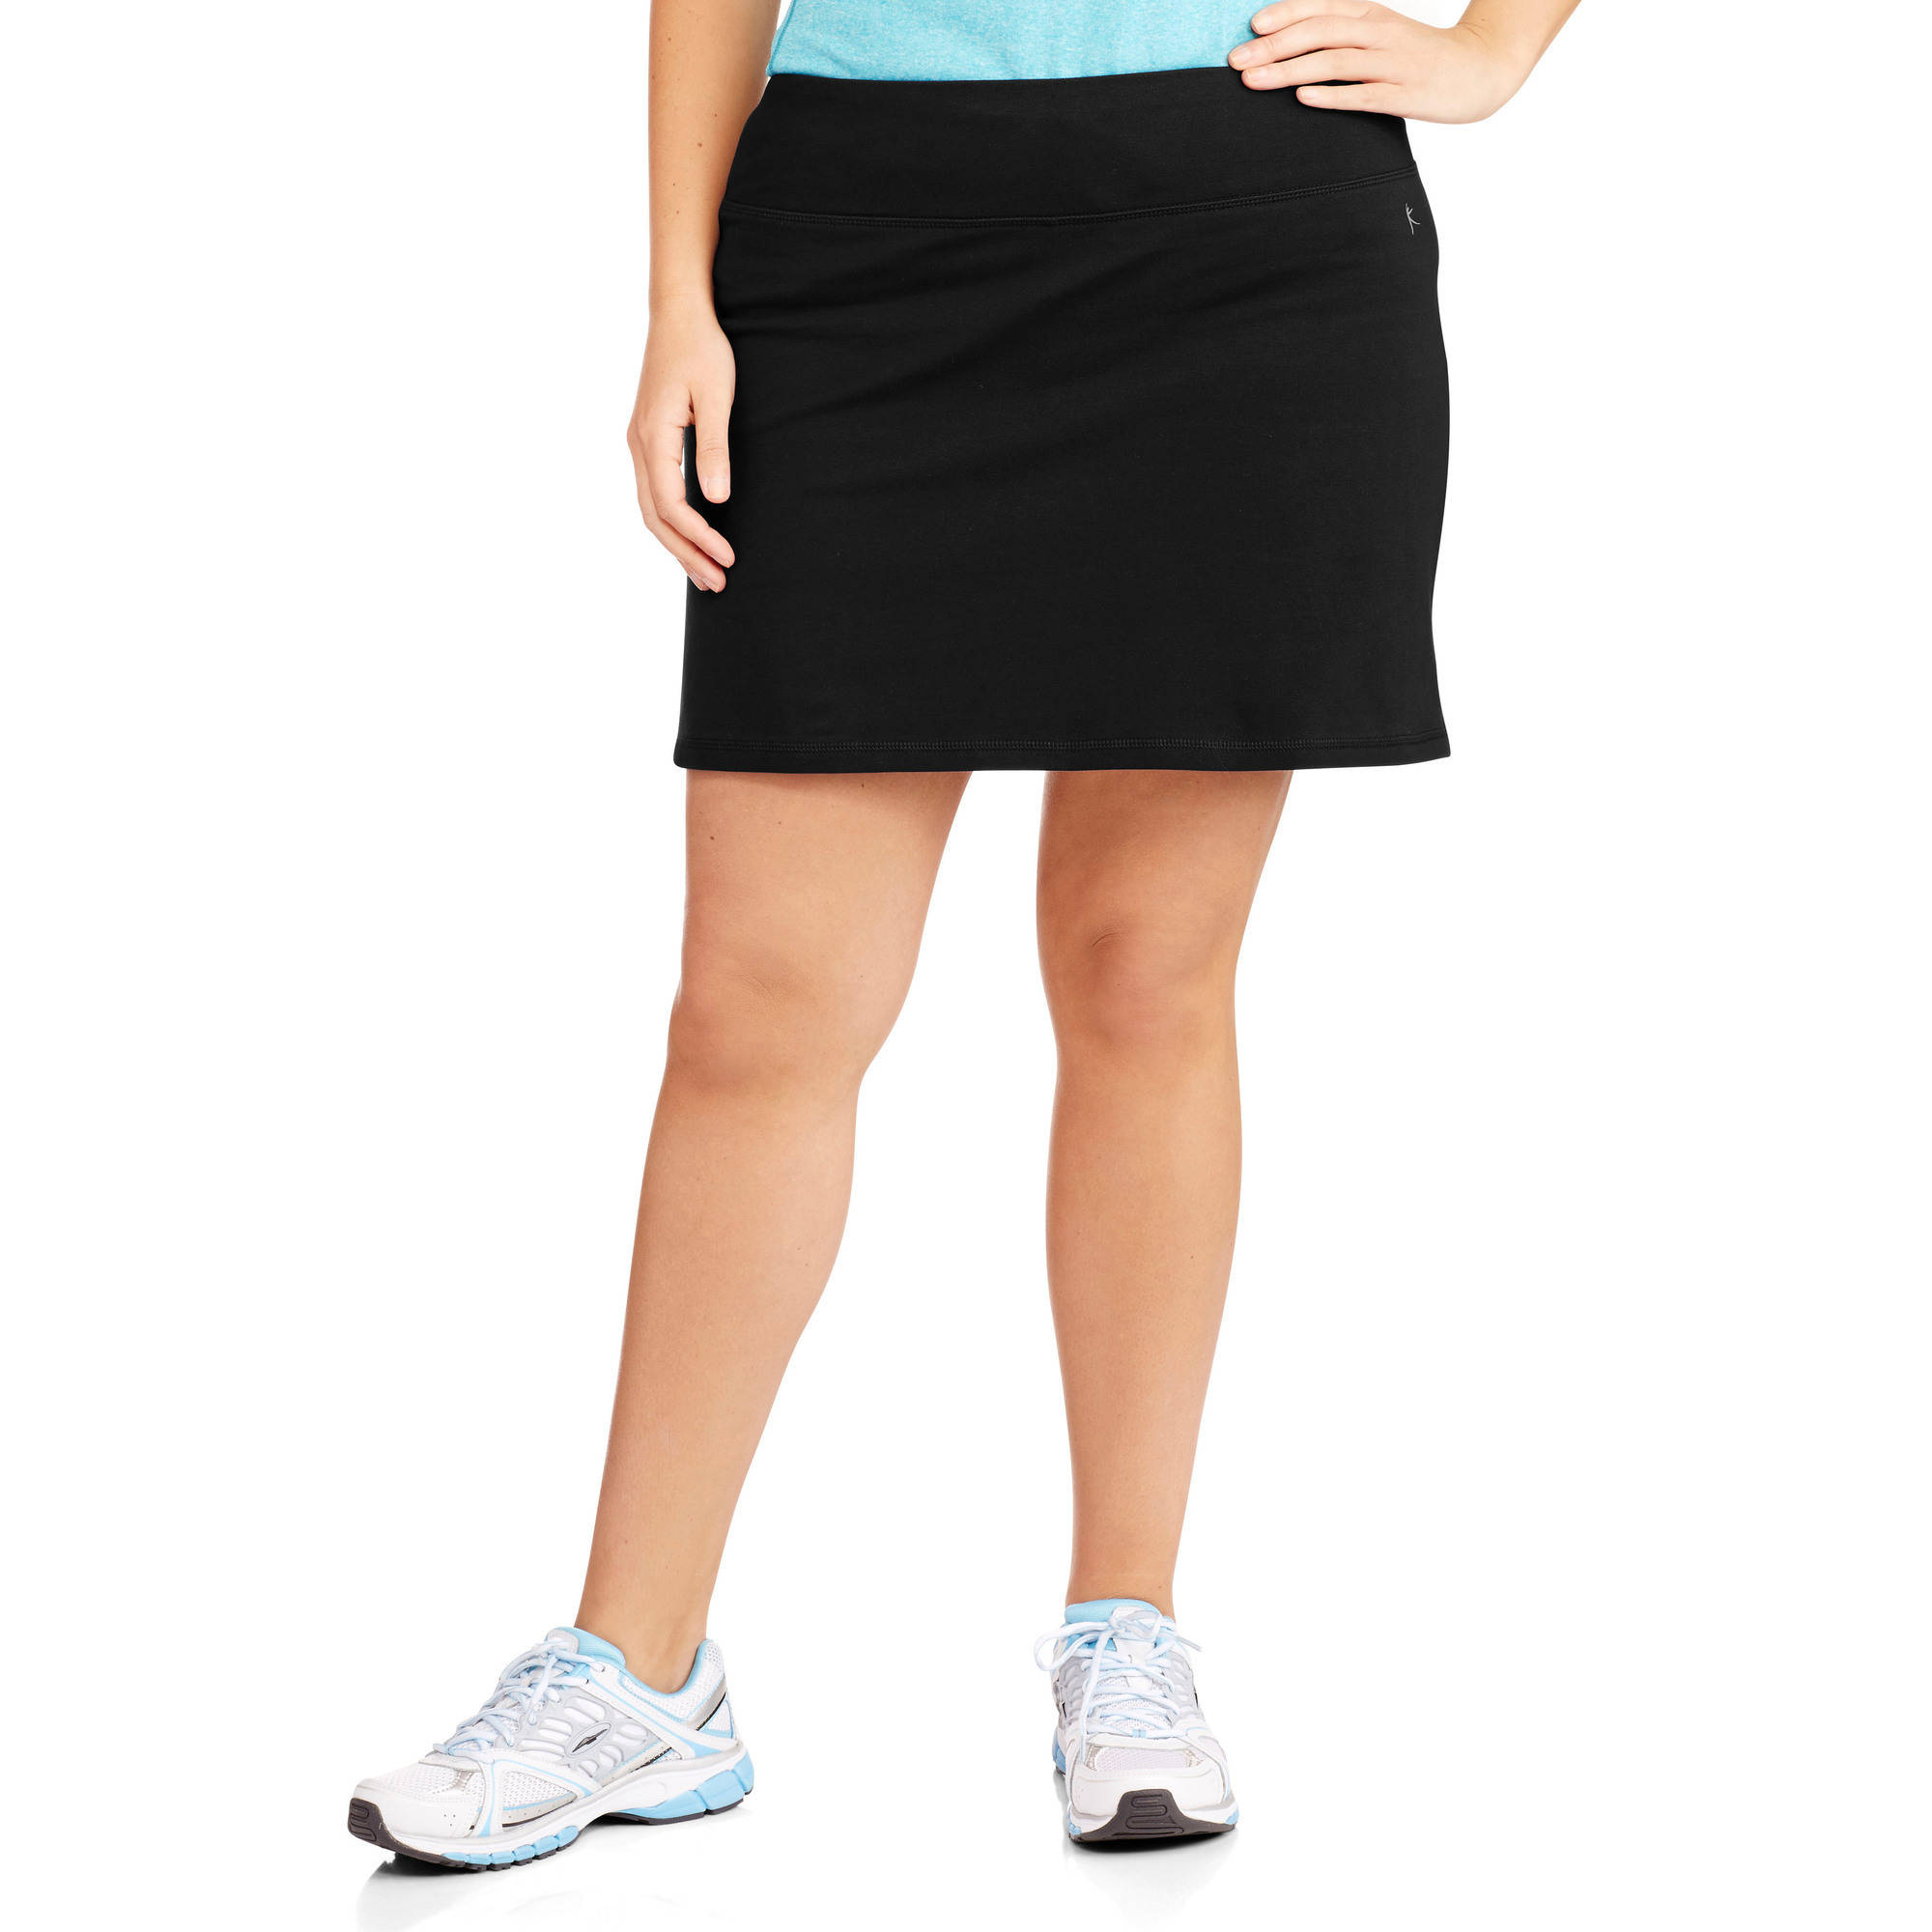 Danskin Now Women's Plus-Size Basic Skort - Walmart.com